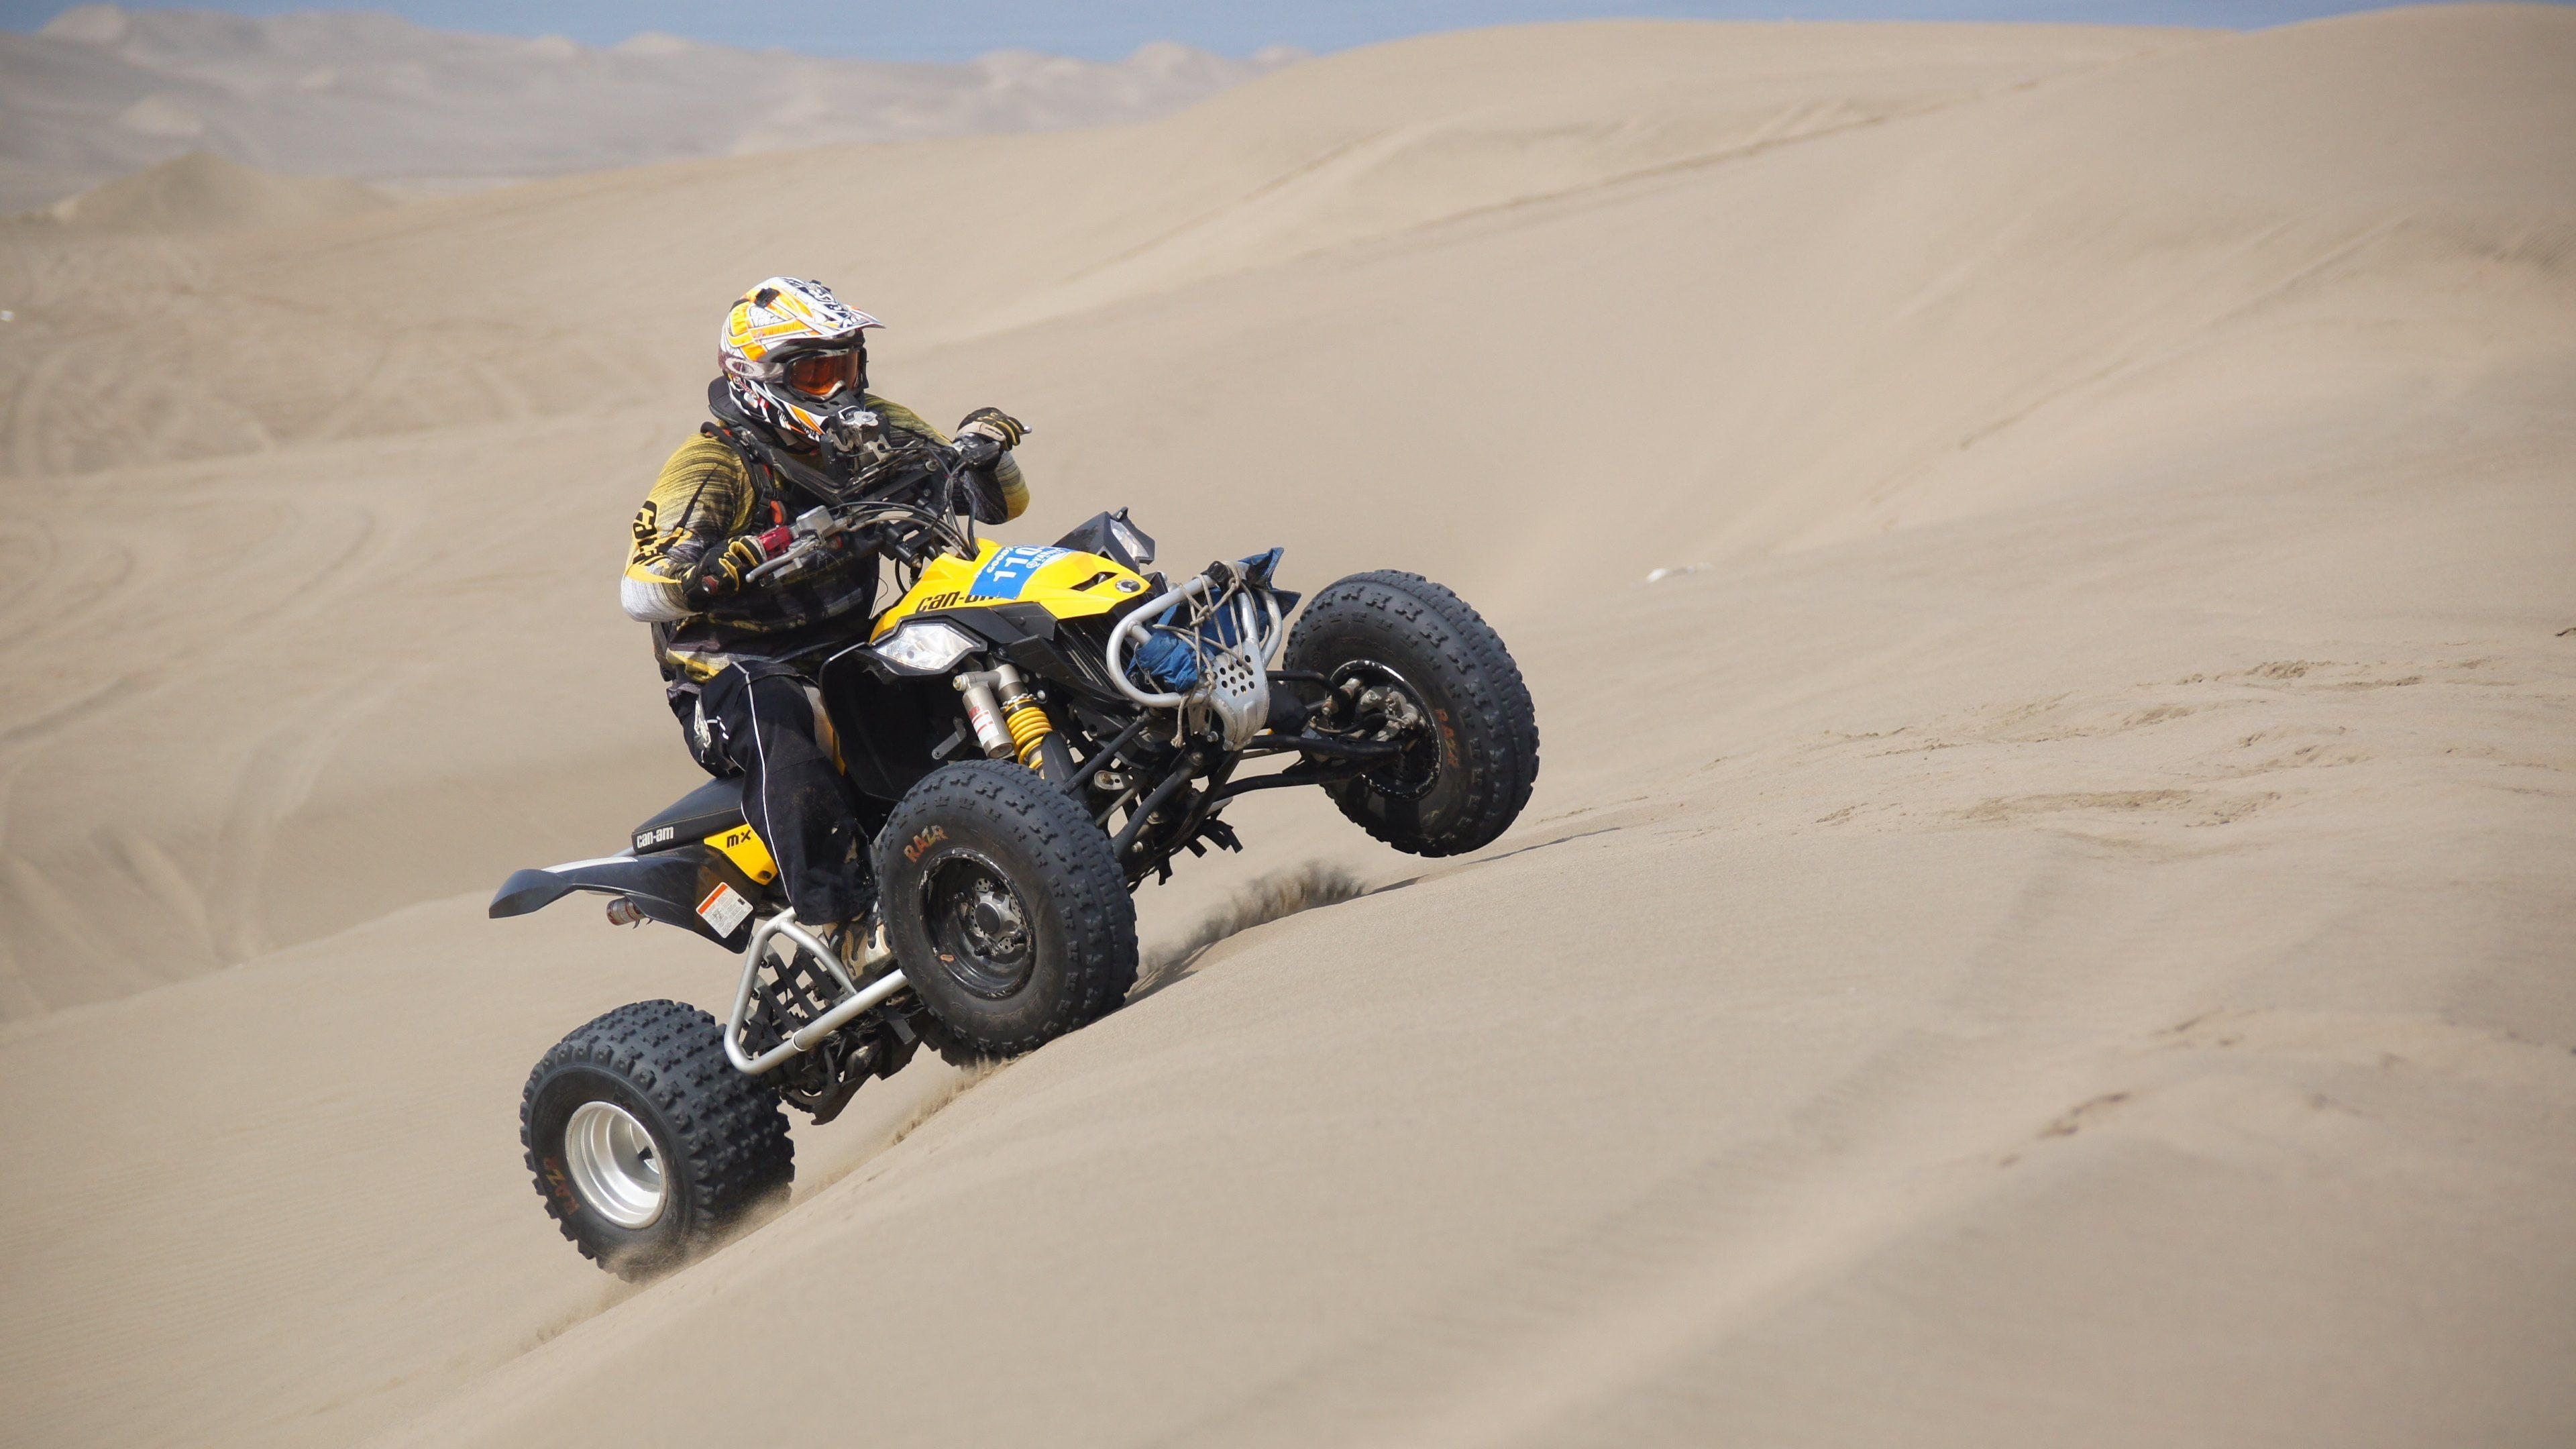 Atv Backgrounds Free Download